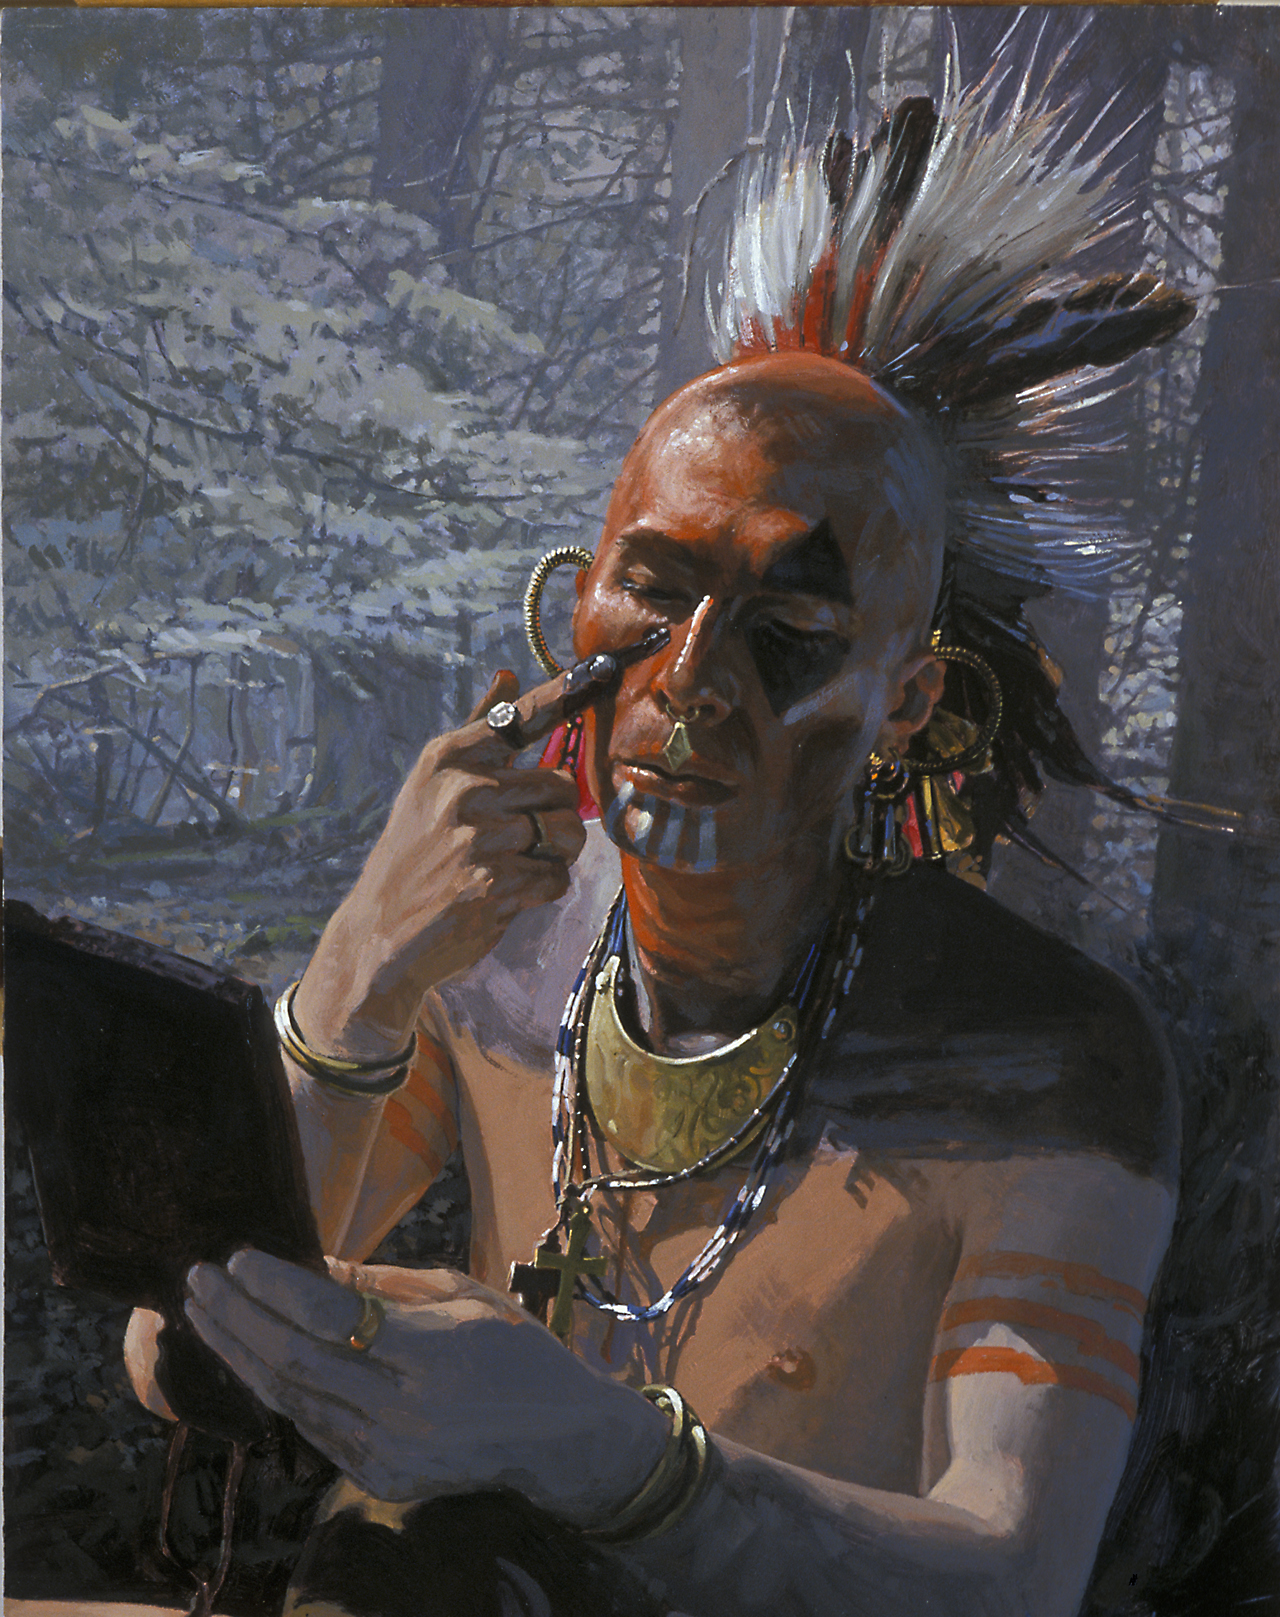 Native American War Paint Meanings http://explorepahistory.com/displayimage.php?imgId=1-2-8B0